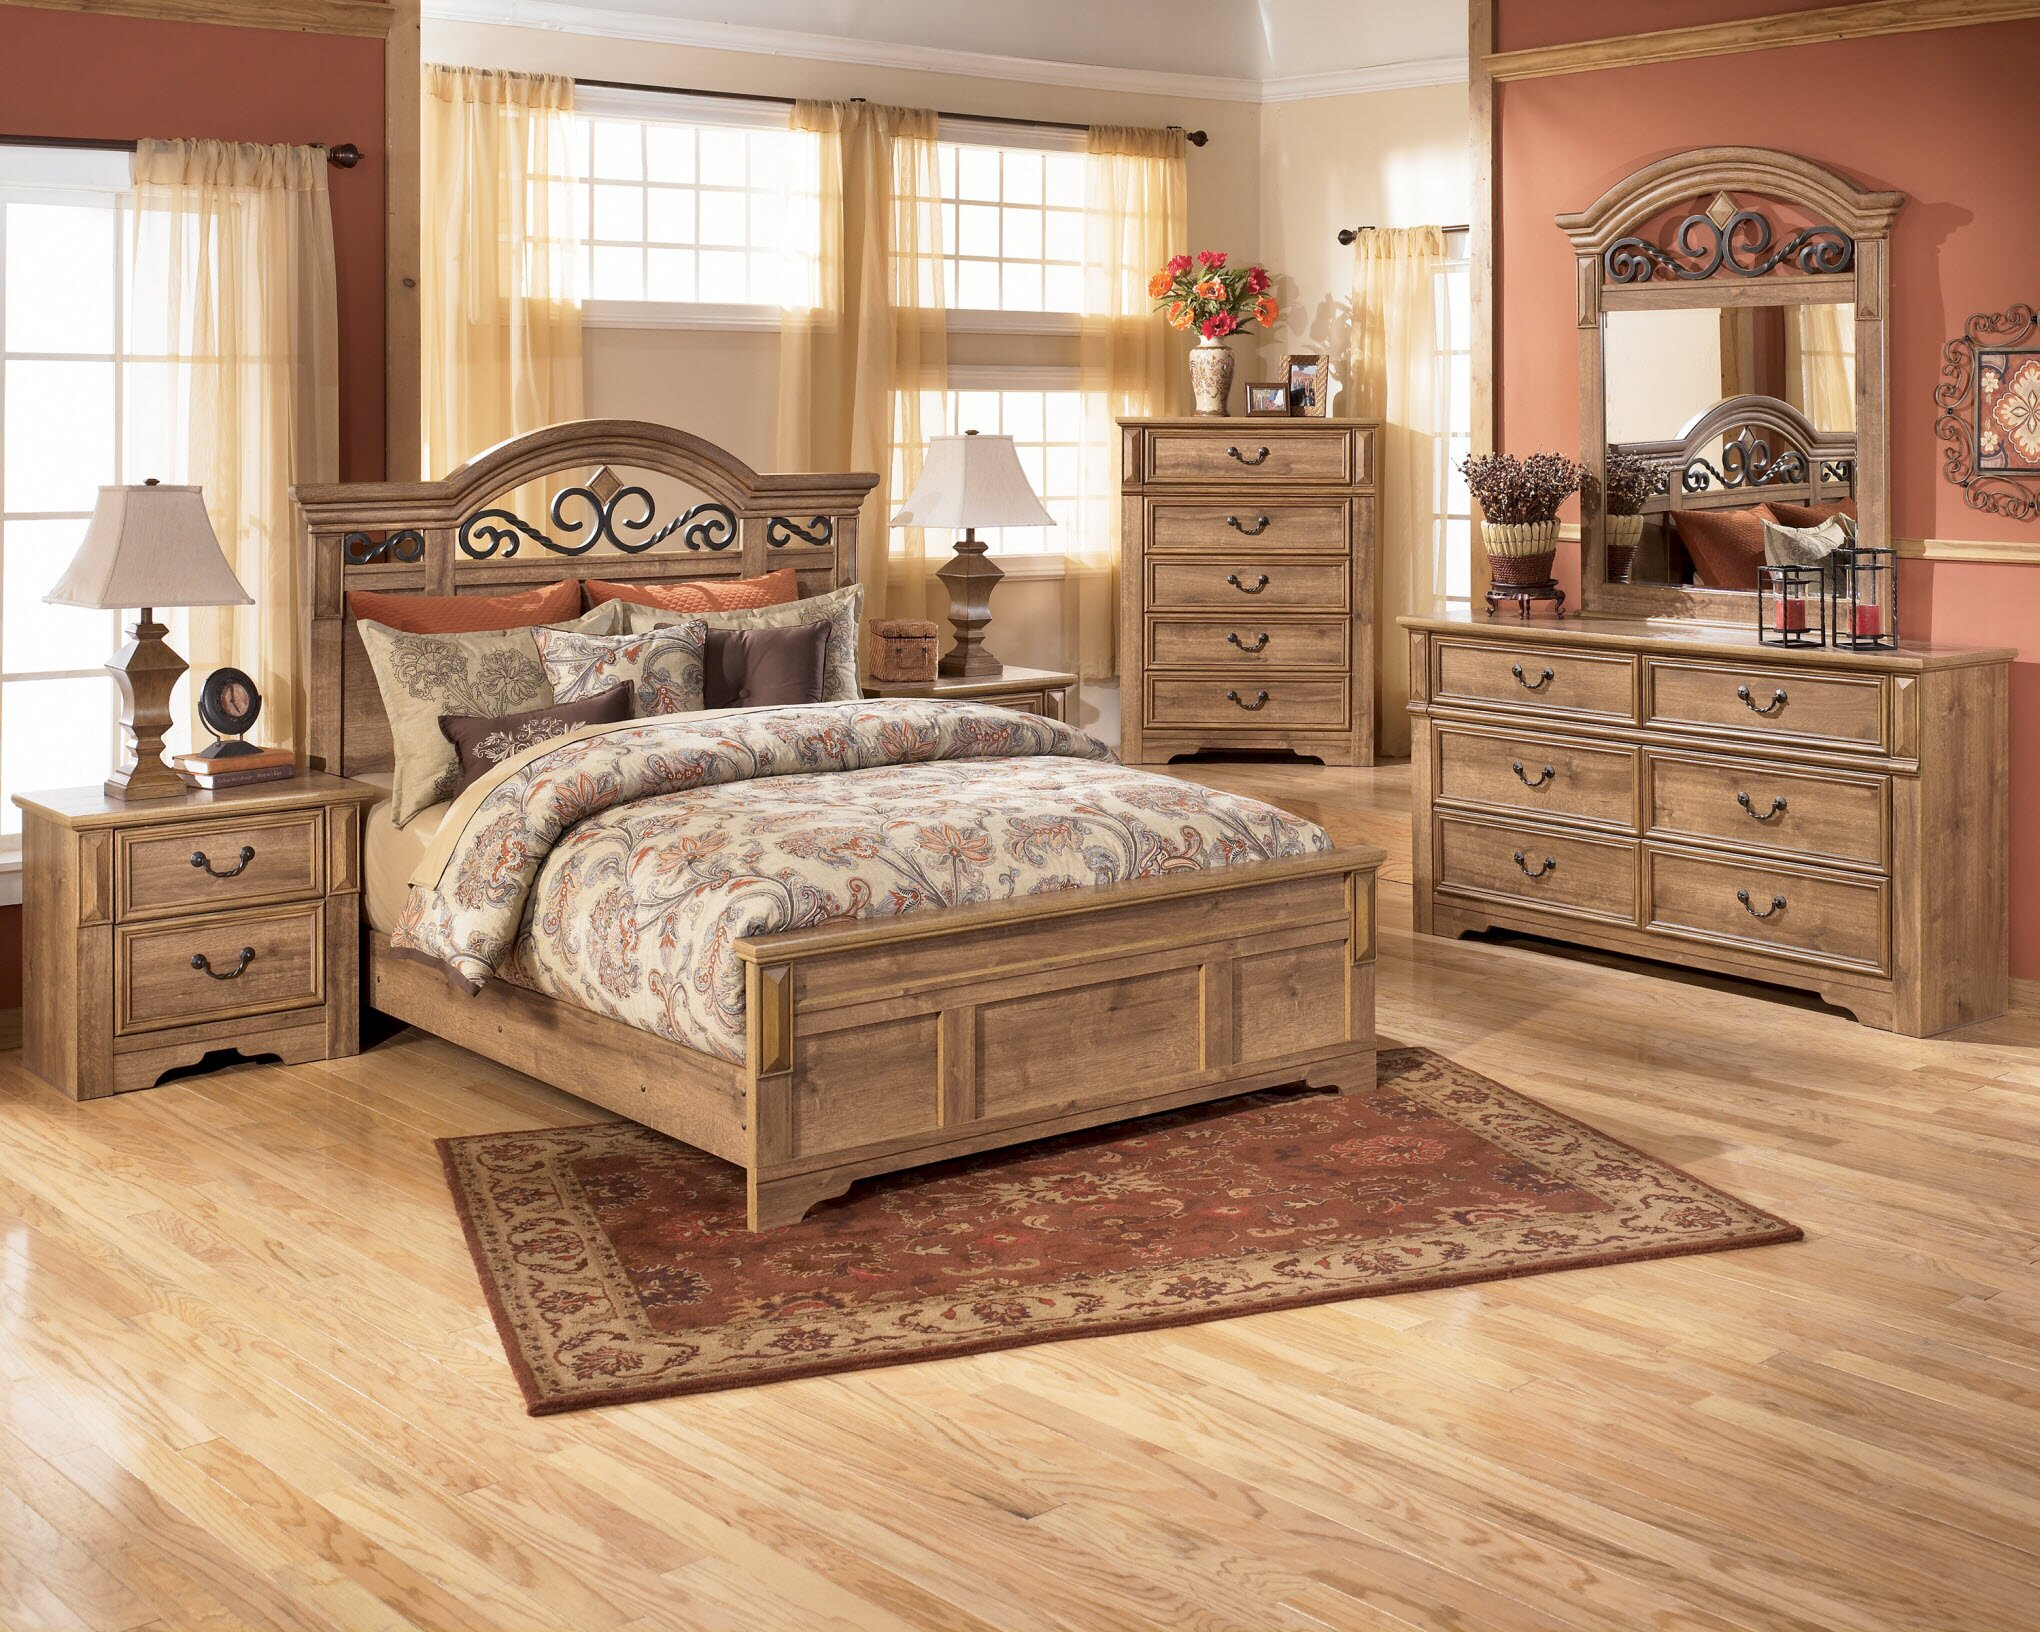 Bedroom craigslist bedroom sets for elegant bedroom for Bedroom sets for sale